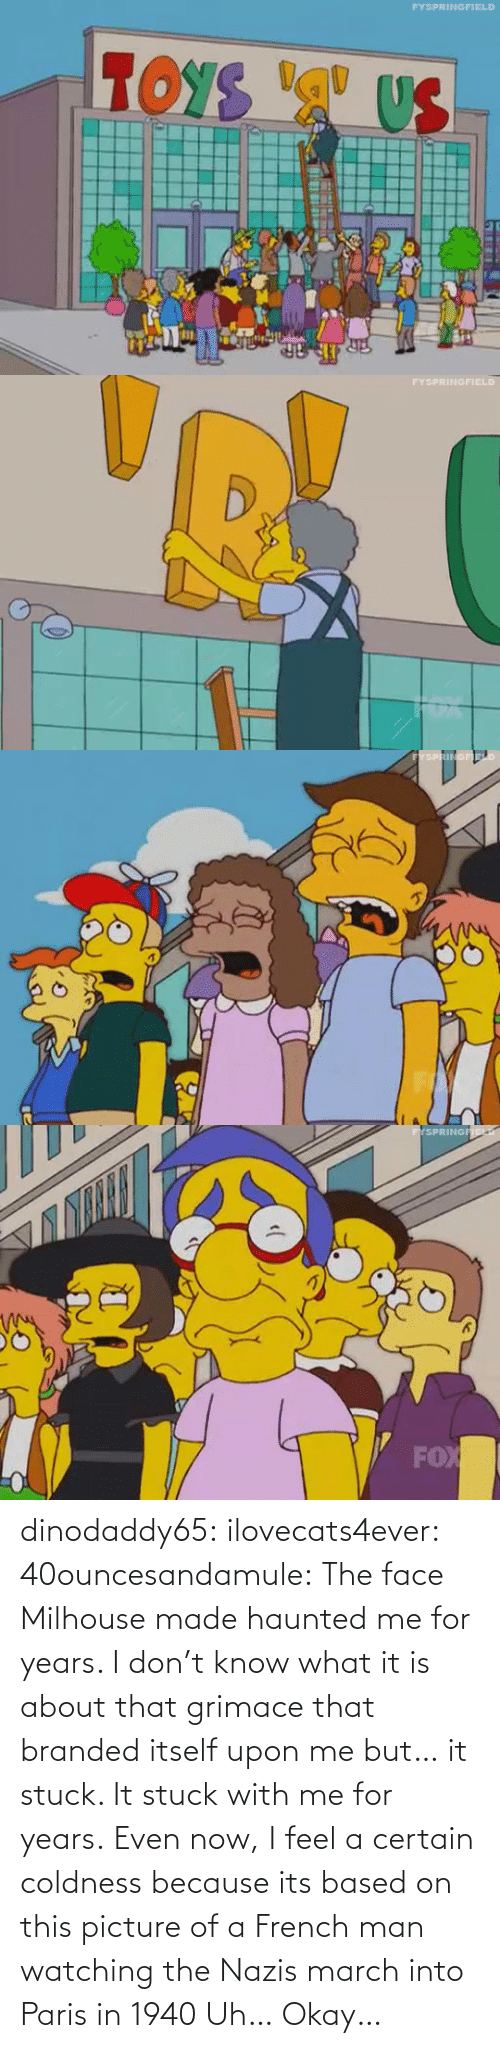 Into: dinodaddy65: ilovecats4ever:  40ouncesandamule:  The face Milhouse made haunted me for years. I don't know what it is about that grimace that branded itself upon me but… it stuck. It stuck with me for years. Even now, I feel a certain coldness  because its based on this picture of a French man watching the Nazis march into Paris in 1940    Uh… Okay…